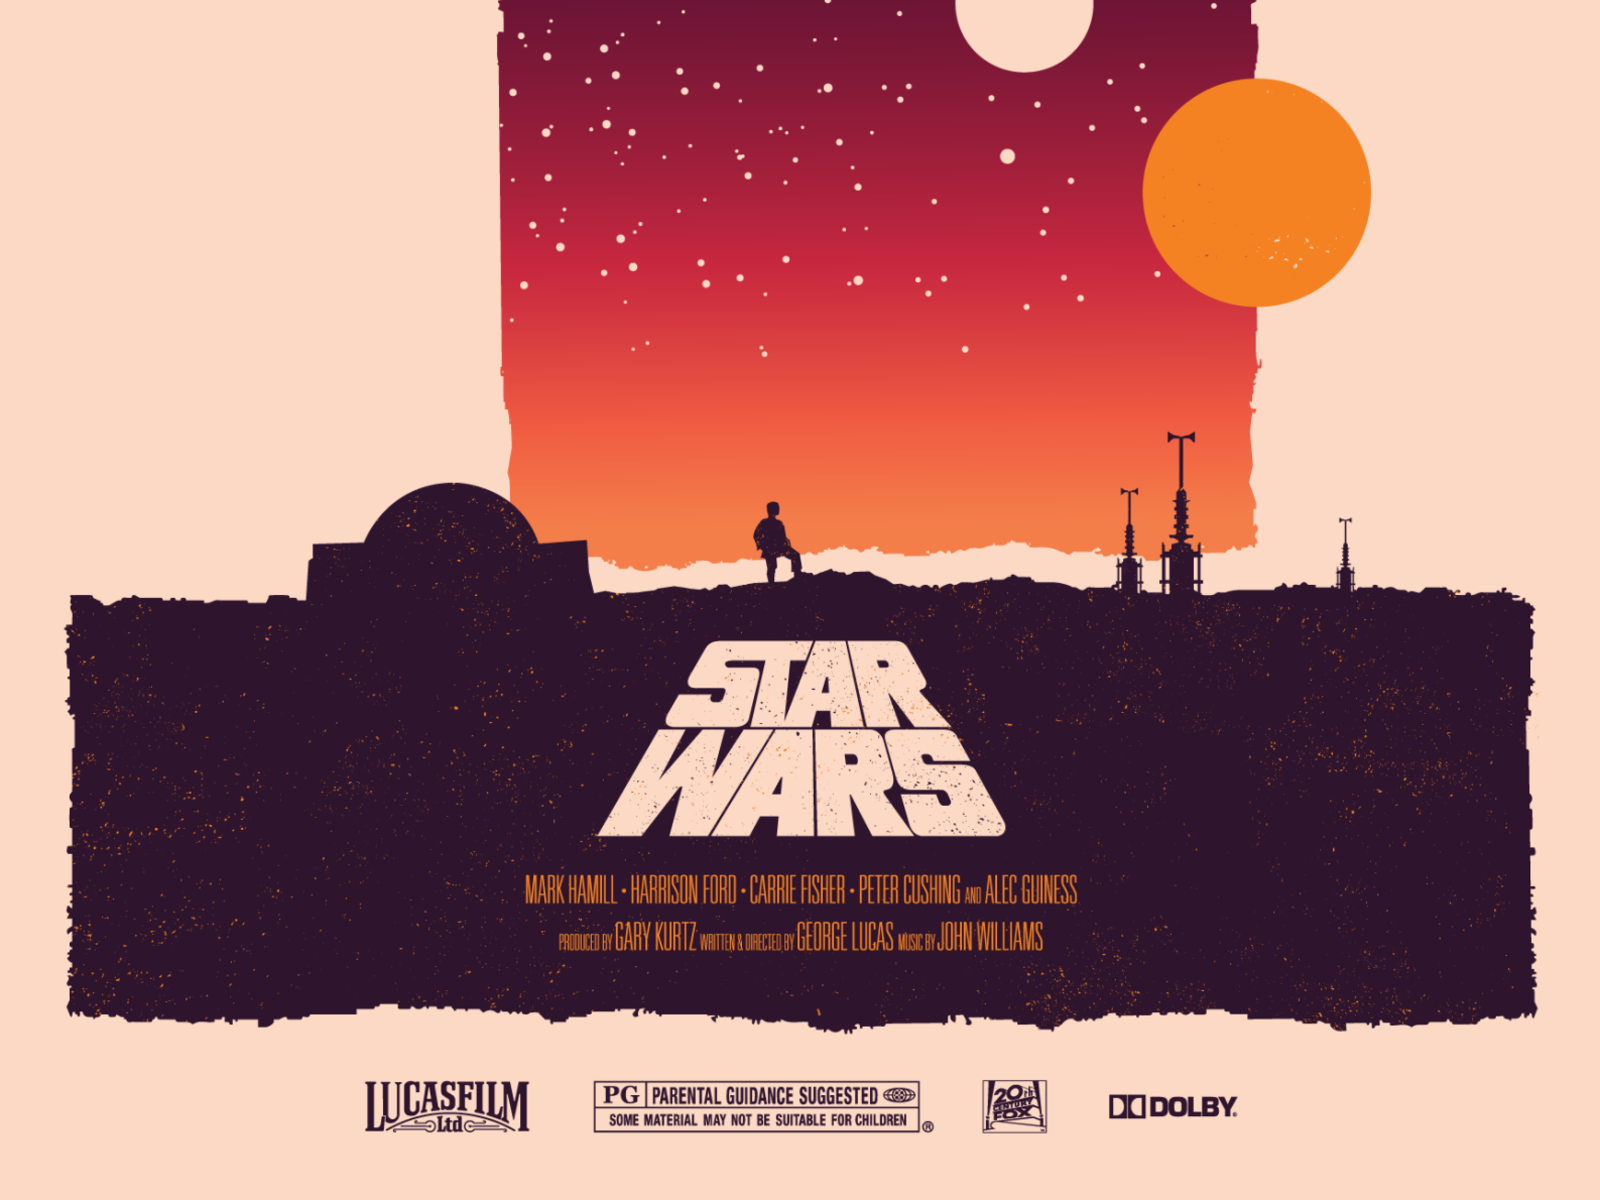 Star Wars Episode Iv A New Hope Poster By Stephen Mccann On Dribbble